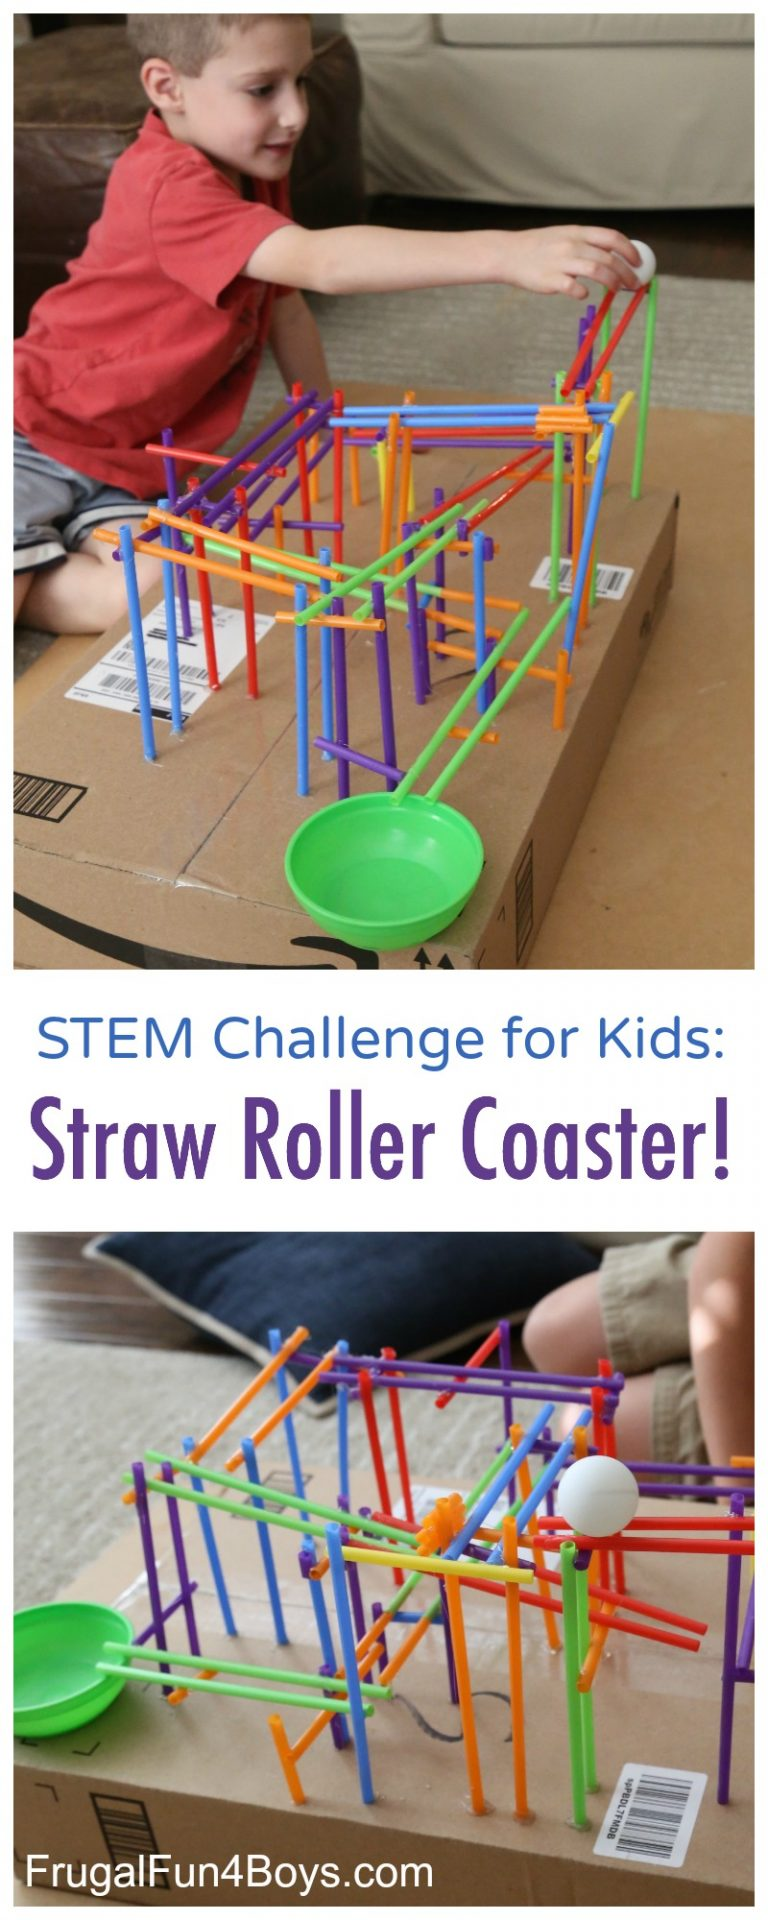 Stem Challenge For Kids Straw Roller Coaster Bigdiyideas Com